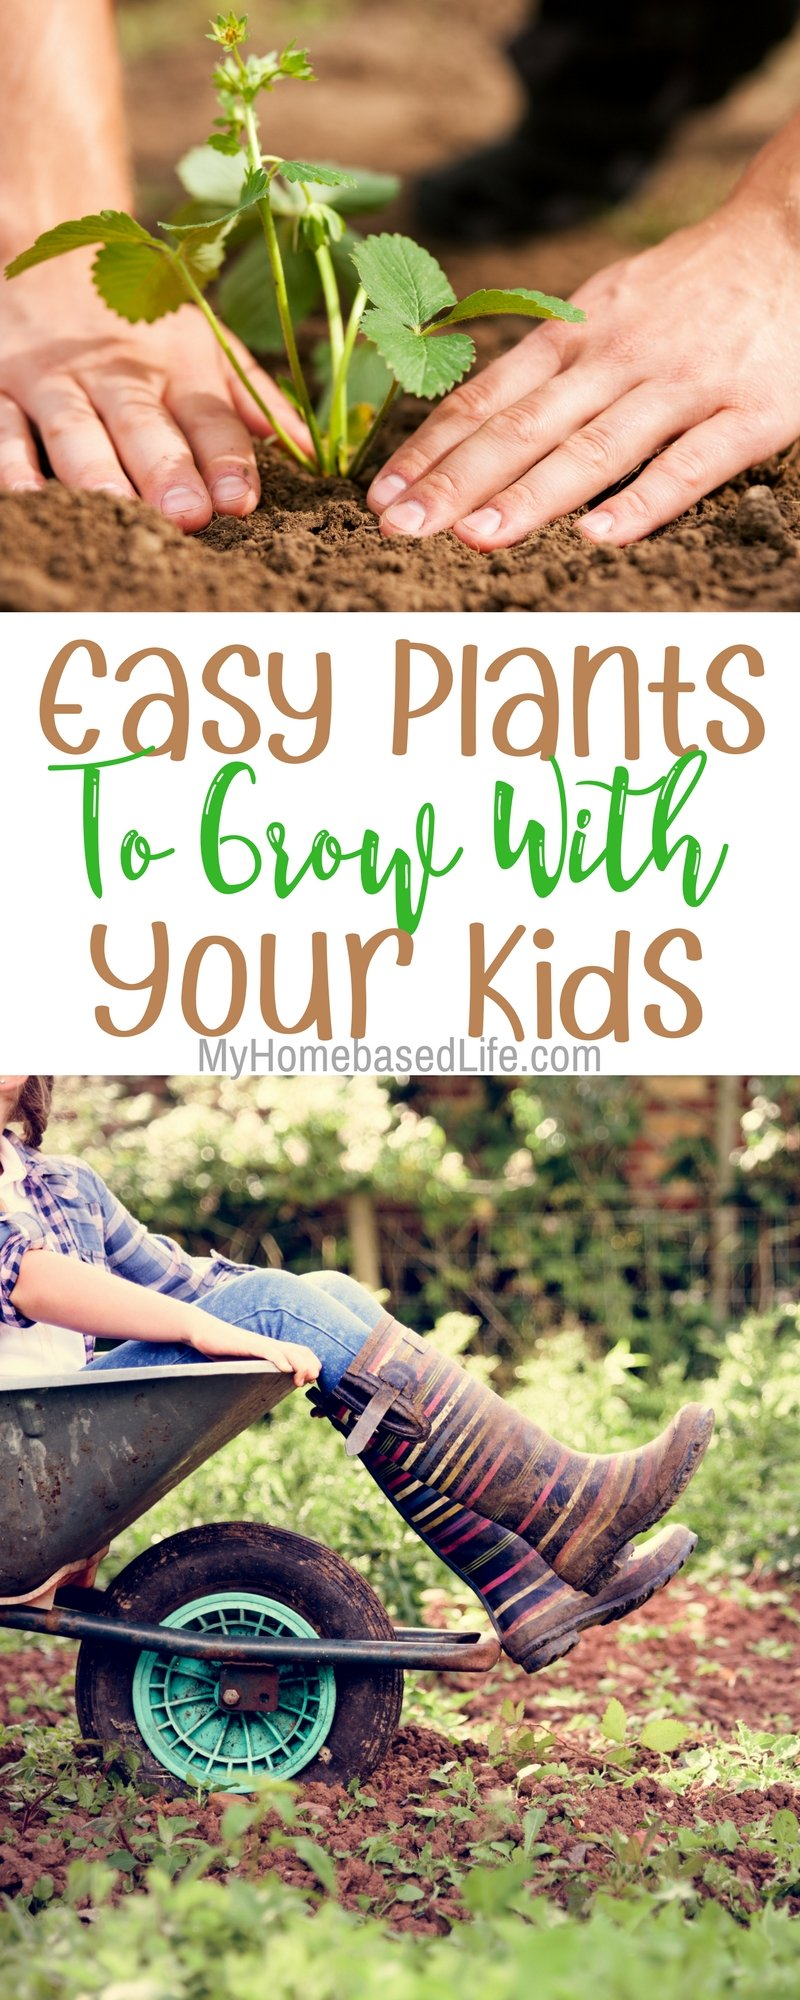 Easy Plants to grow with your kids. Start your garden with these! Gardening | #gardening | Gardening with kids | Kids Activity |